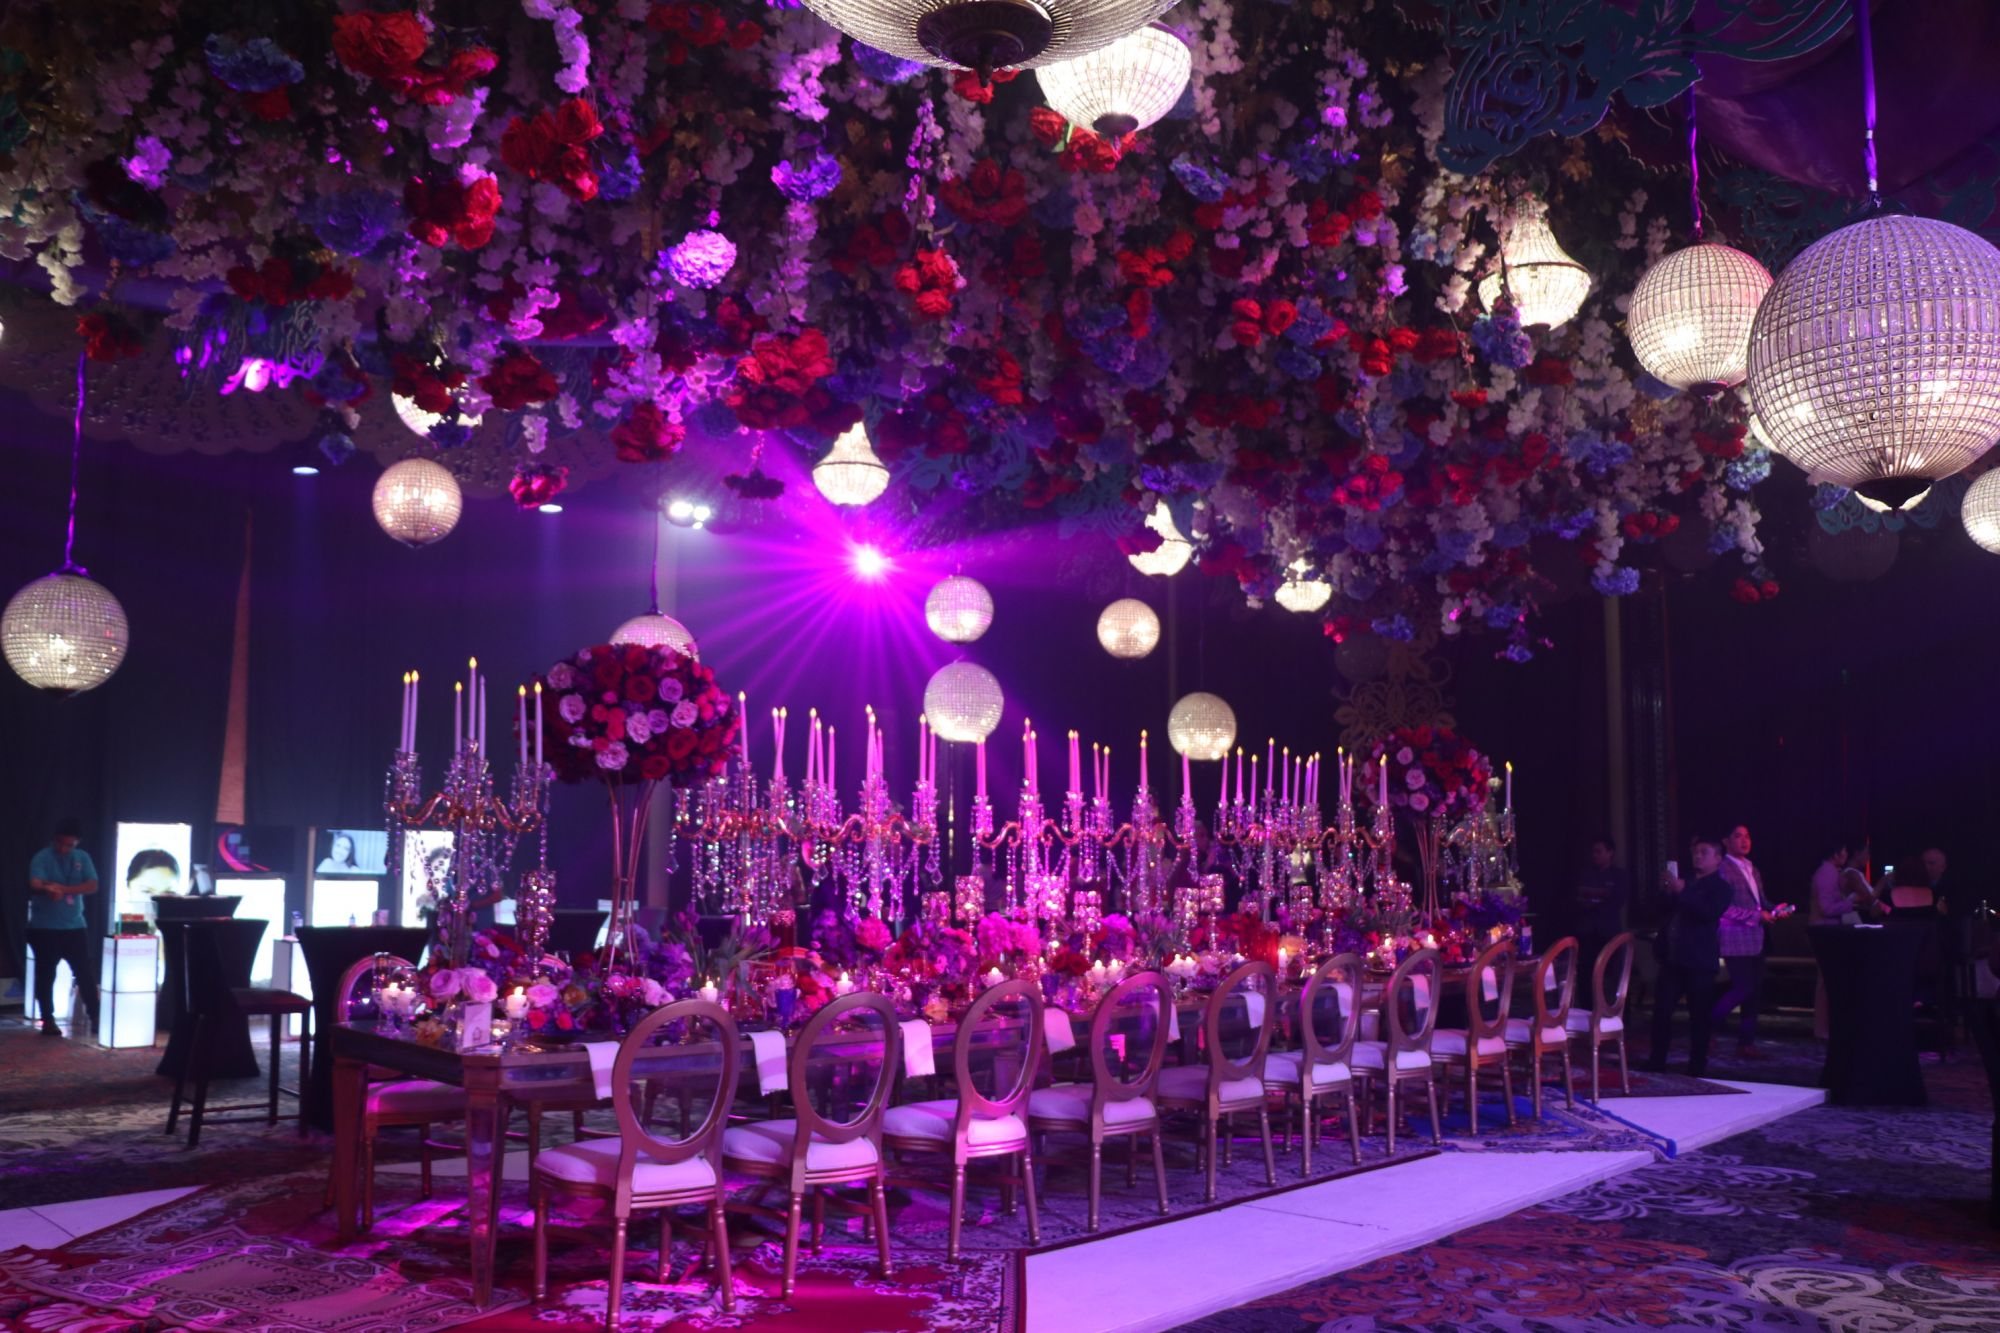 In Case You Missed It: Marry Me at Marriot 2019